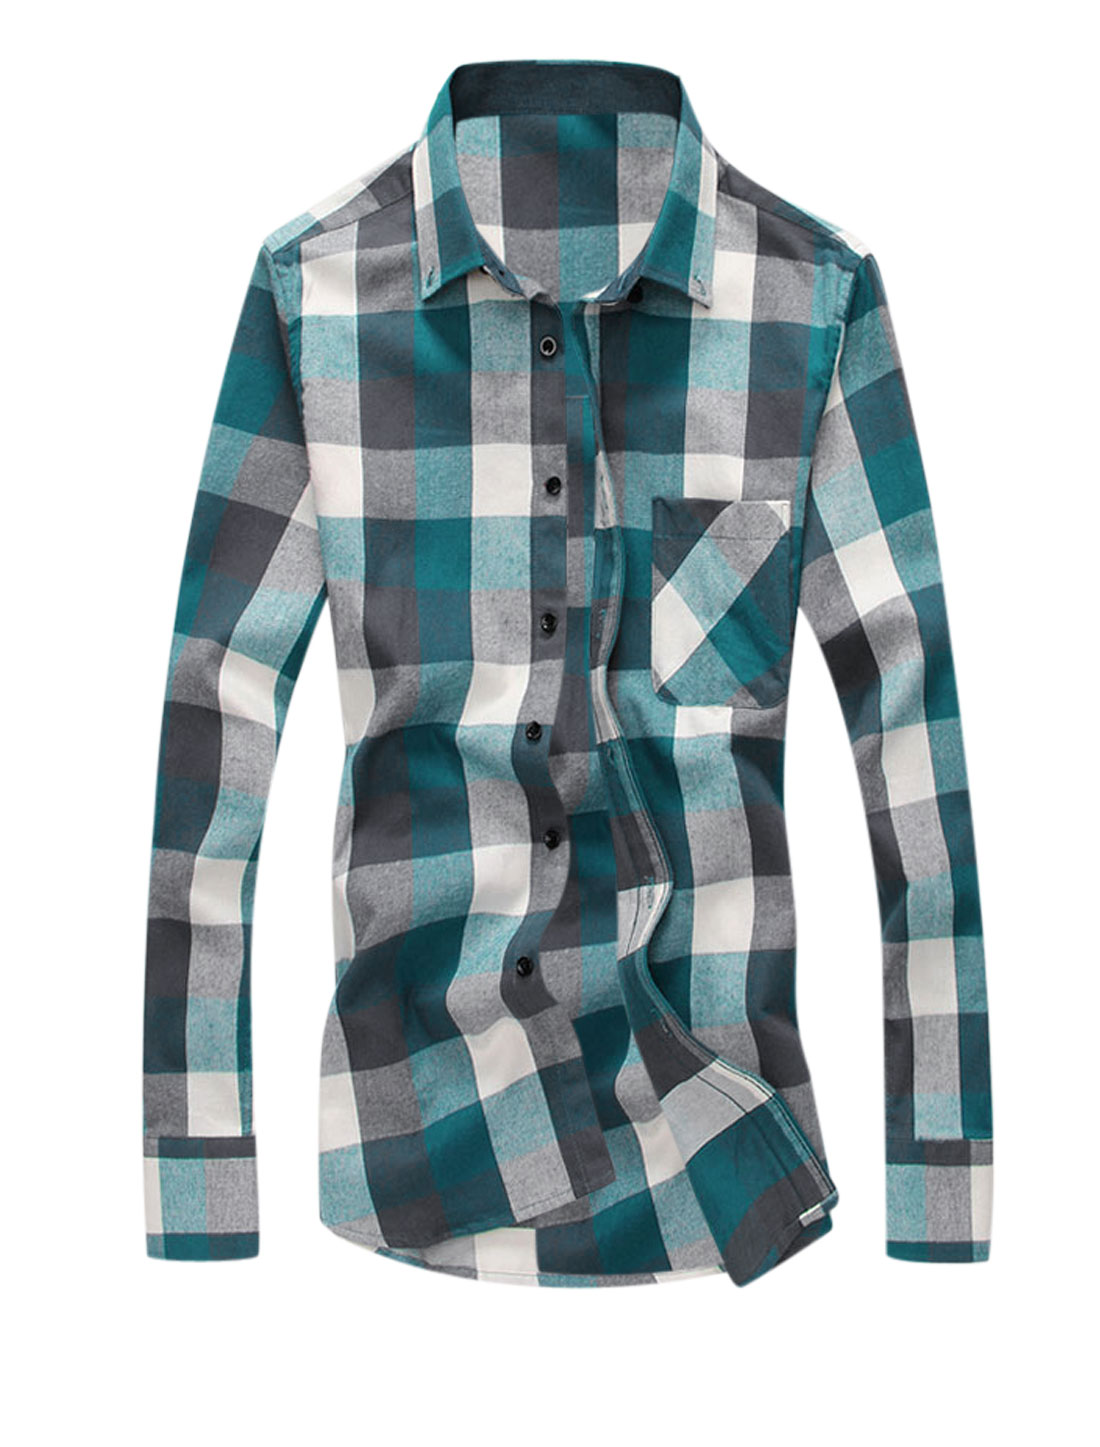 Mens Long Sleeve Pocket Button Down Checks Print Shirts Turquoise Beige M